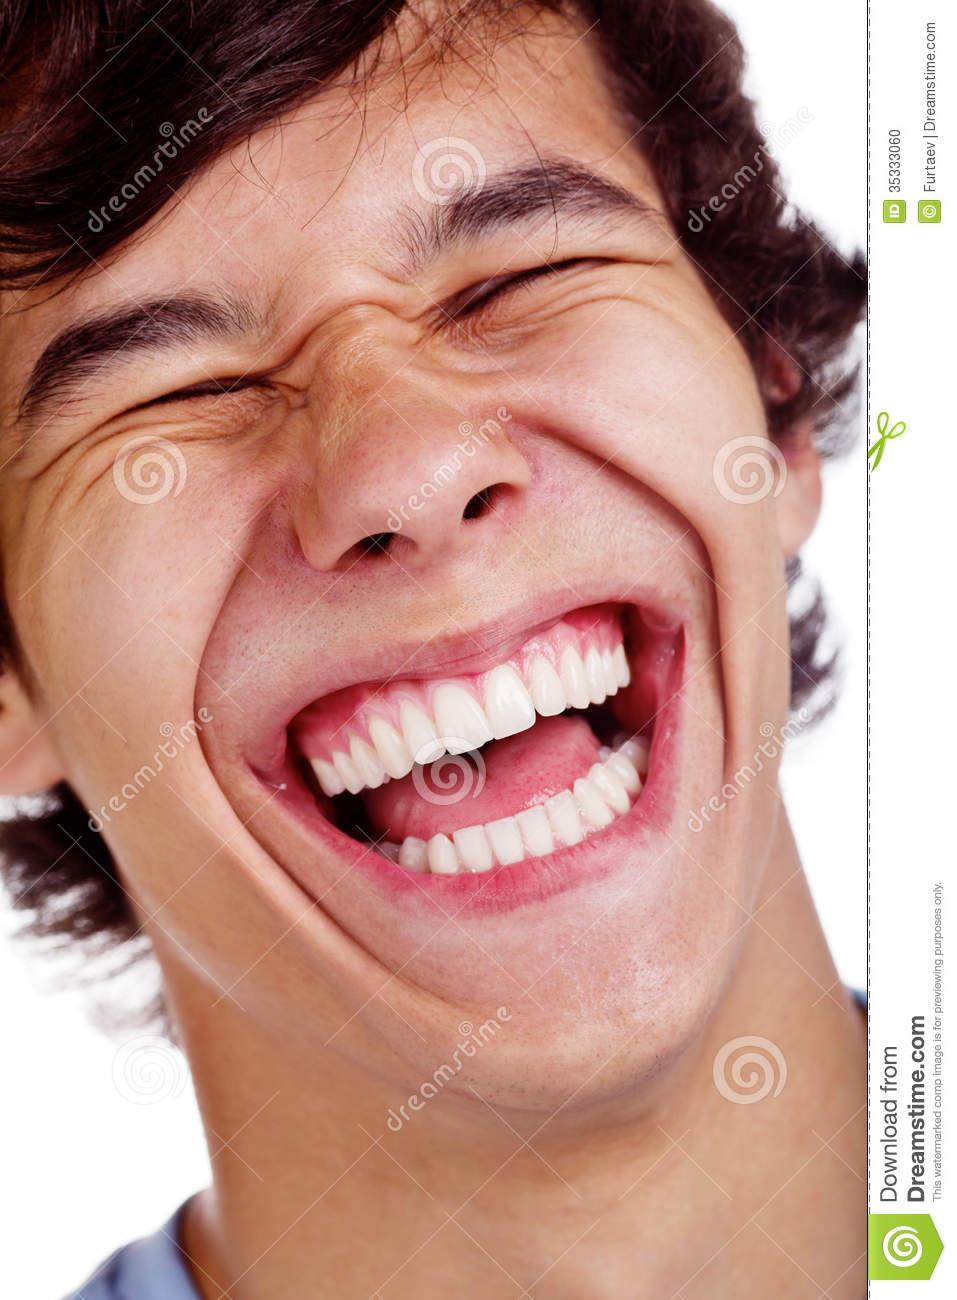 Happy Laughing Face Closeup Stock Photo - Image: 35333060